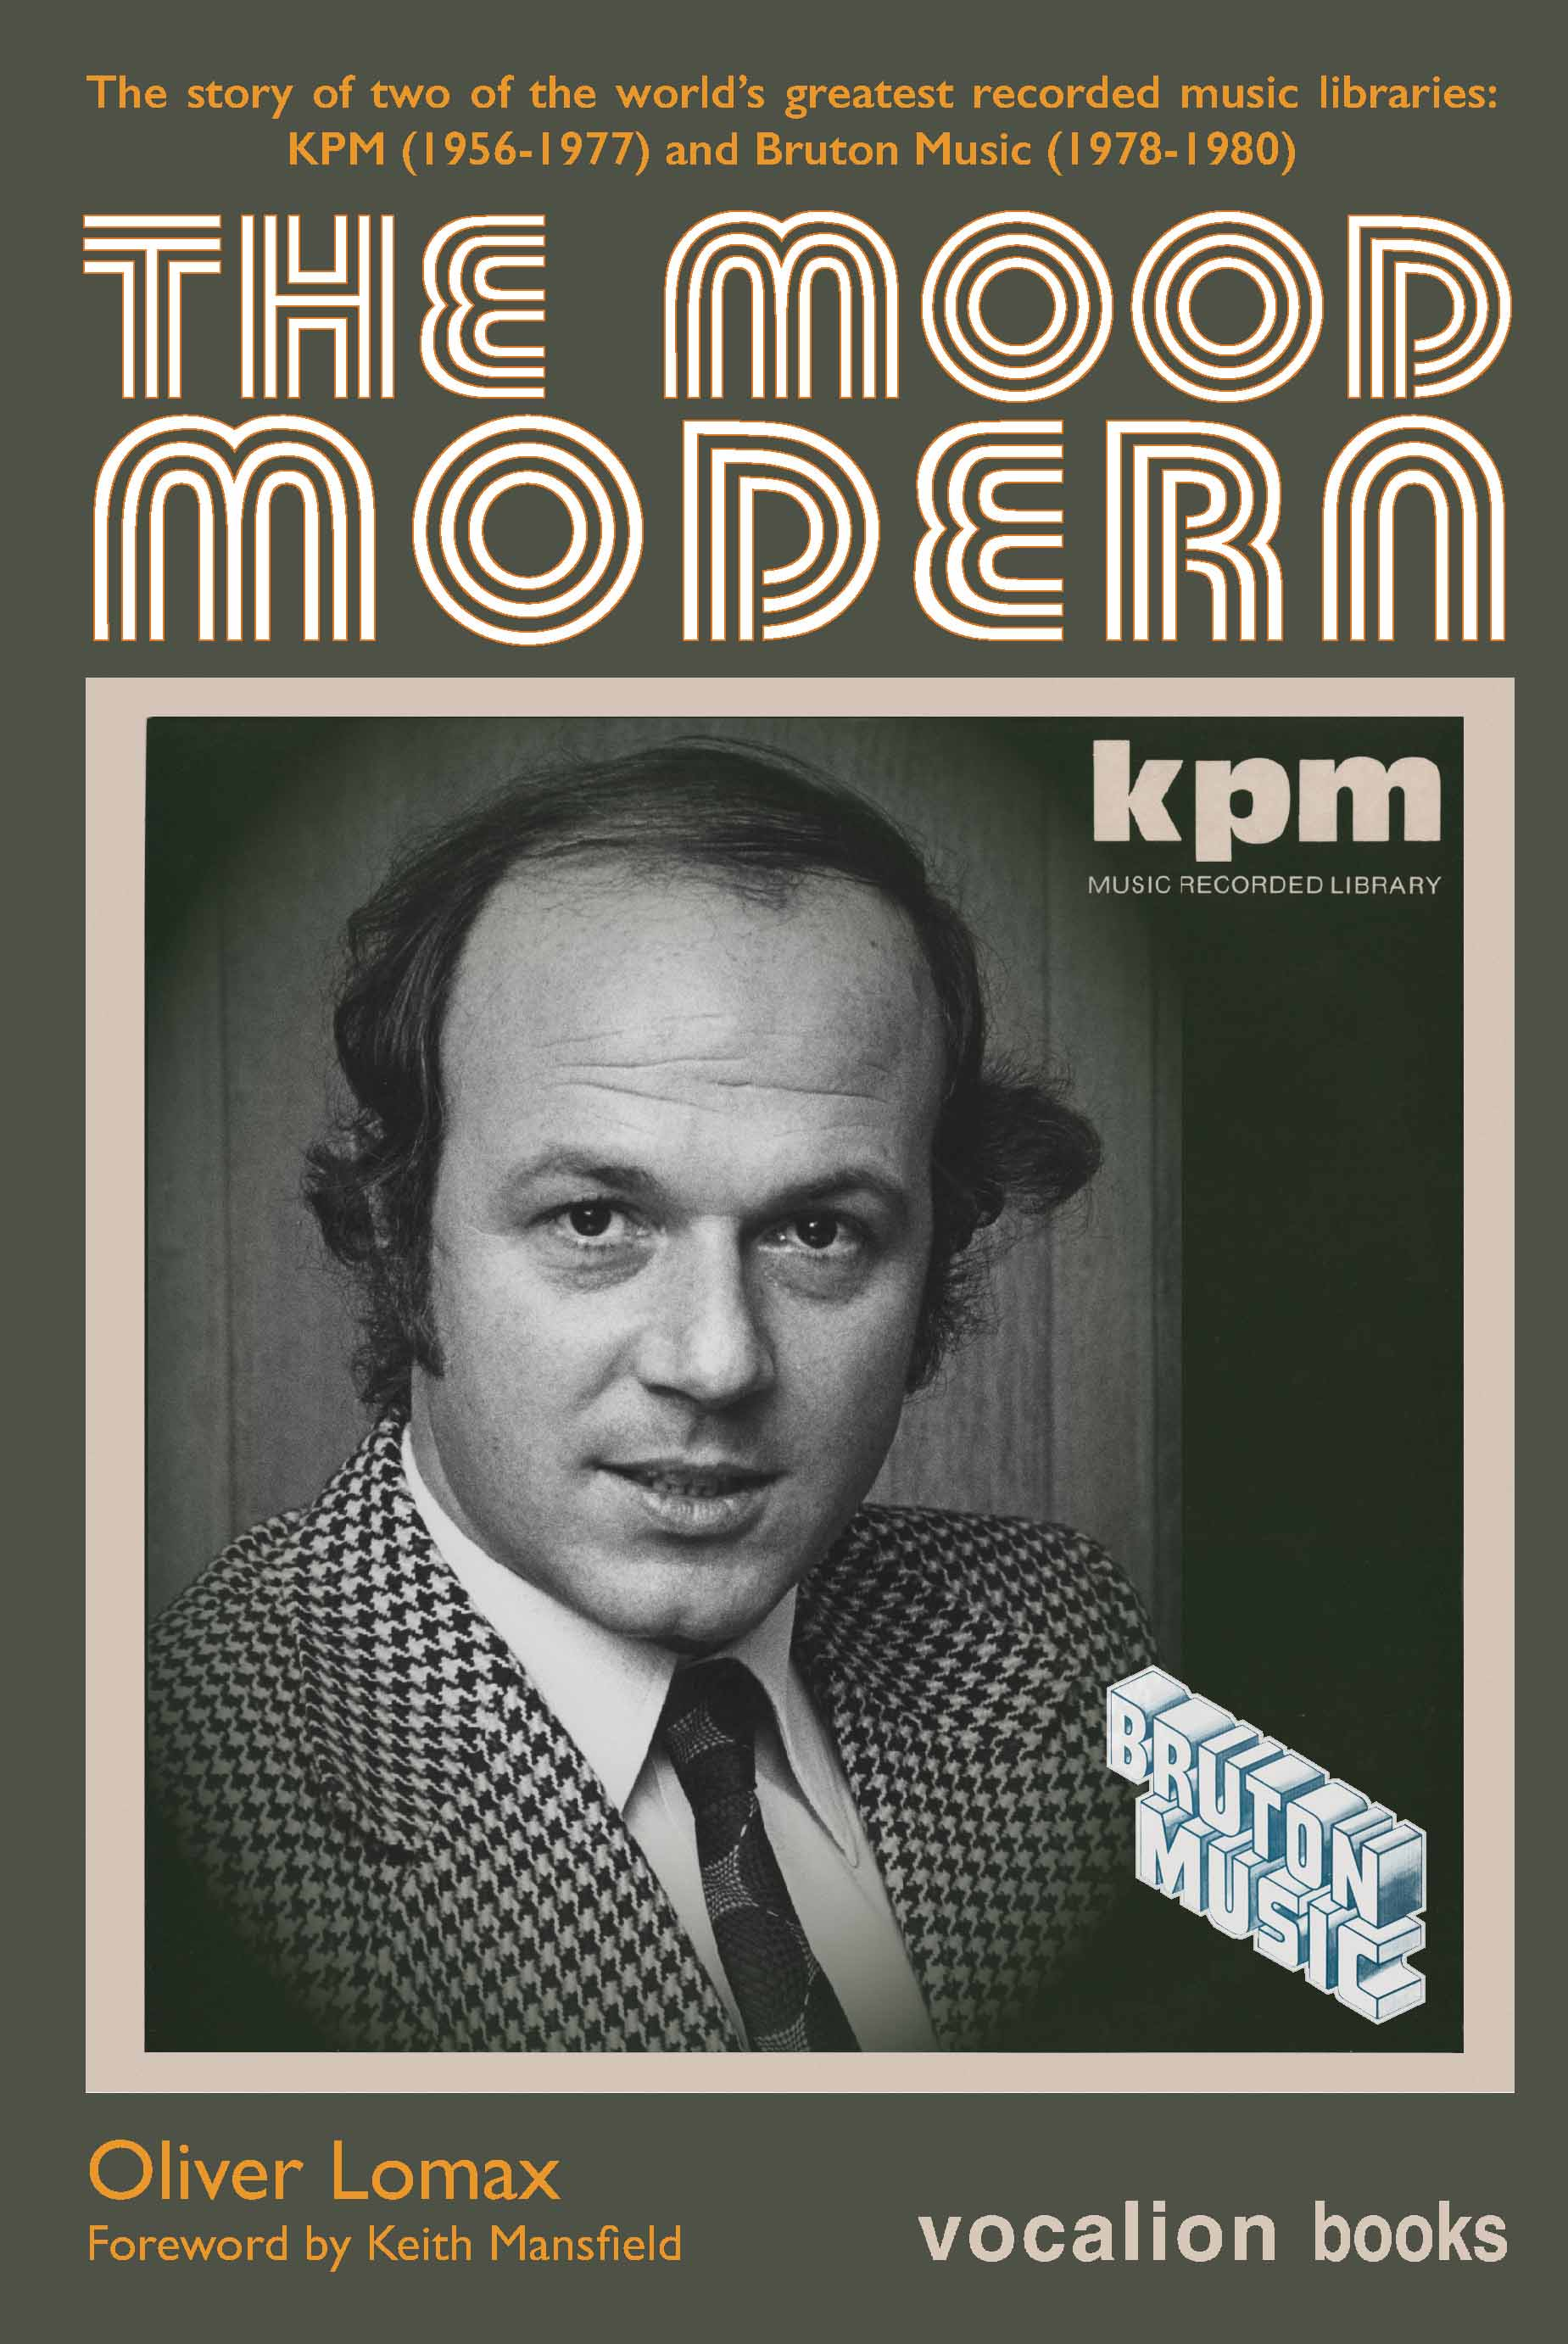 The Mood Modern - The story of two of the world's greatest